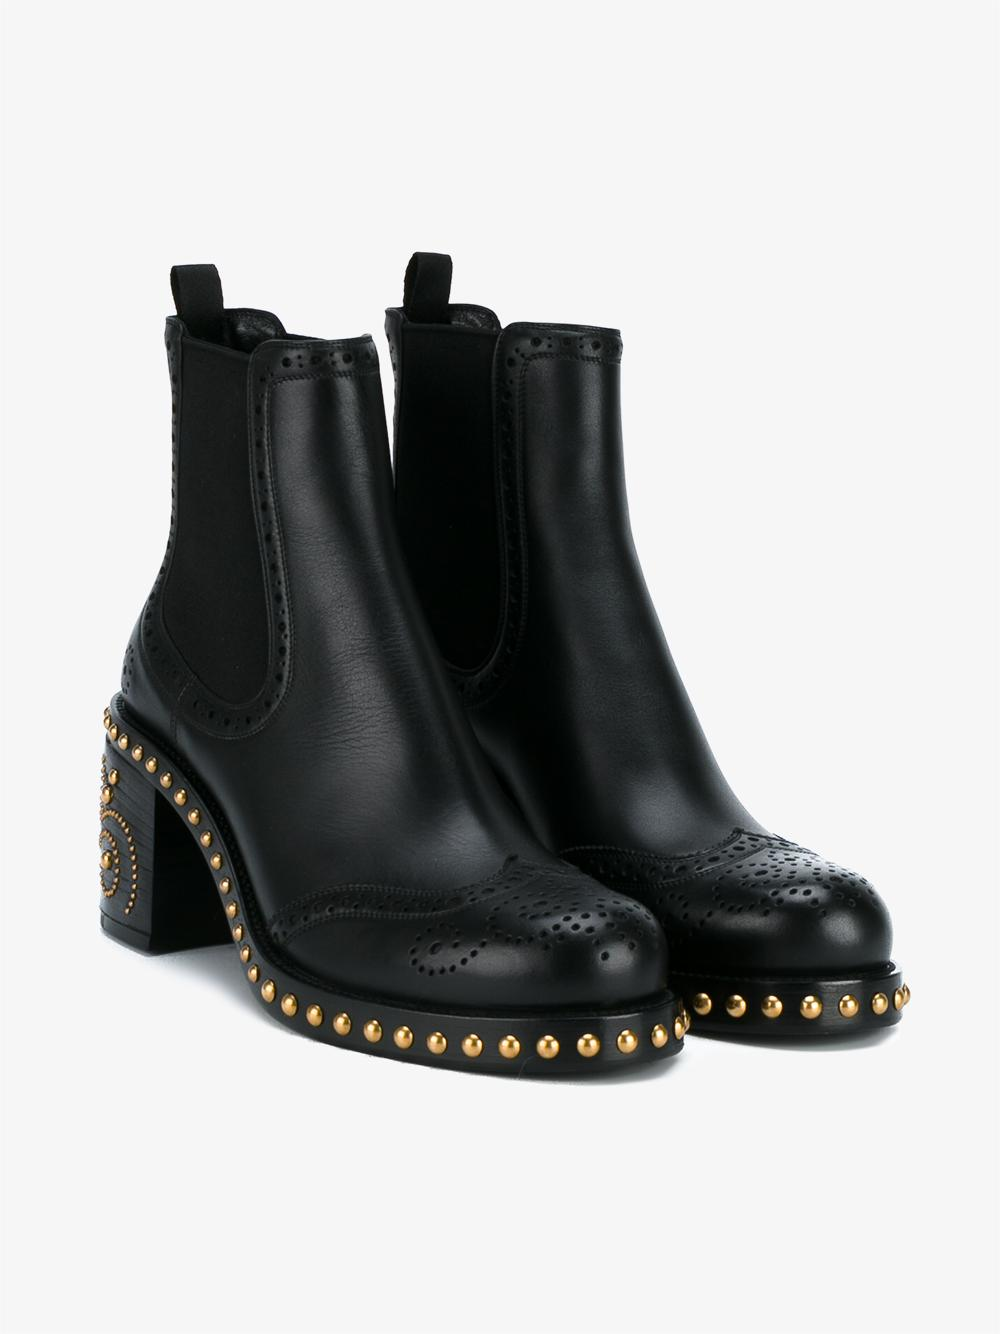 Miu Miu Studded Leather Chelsea Boots In Black Lyst